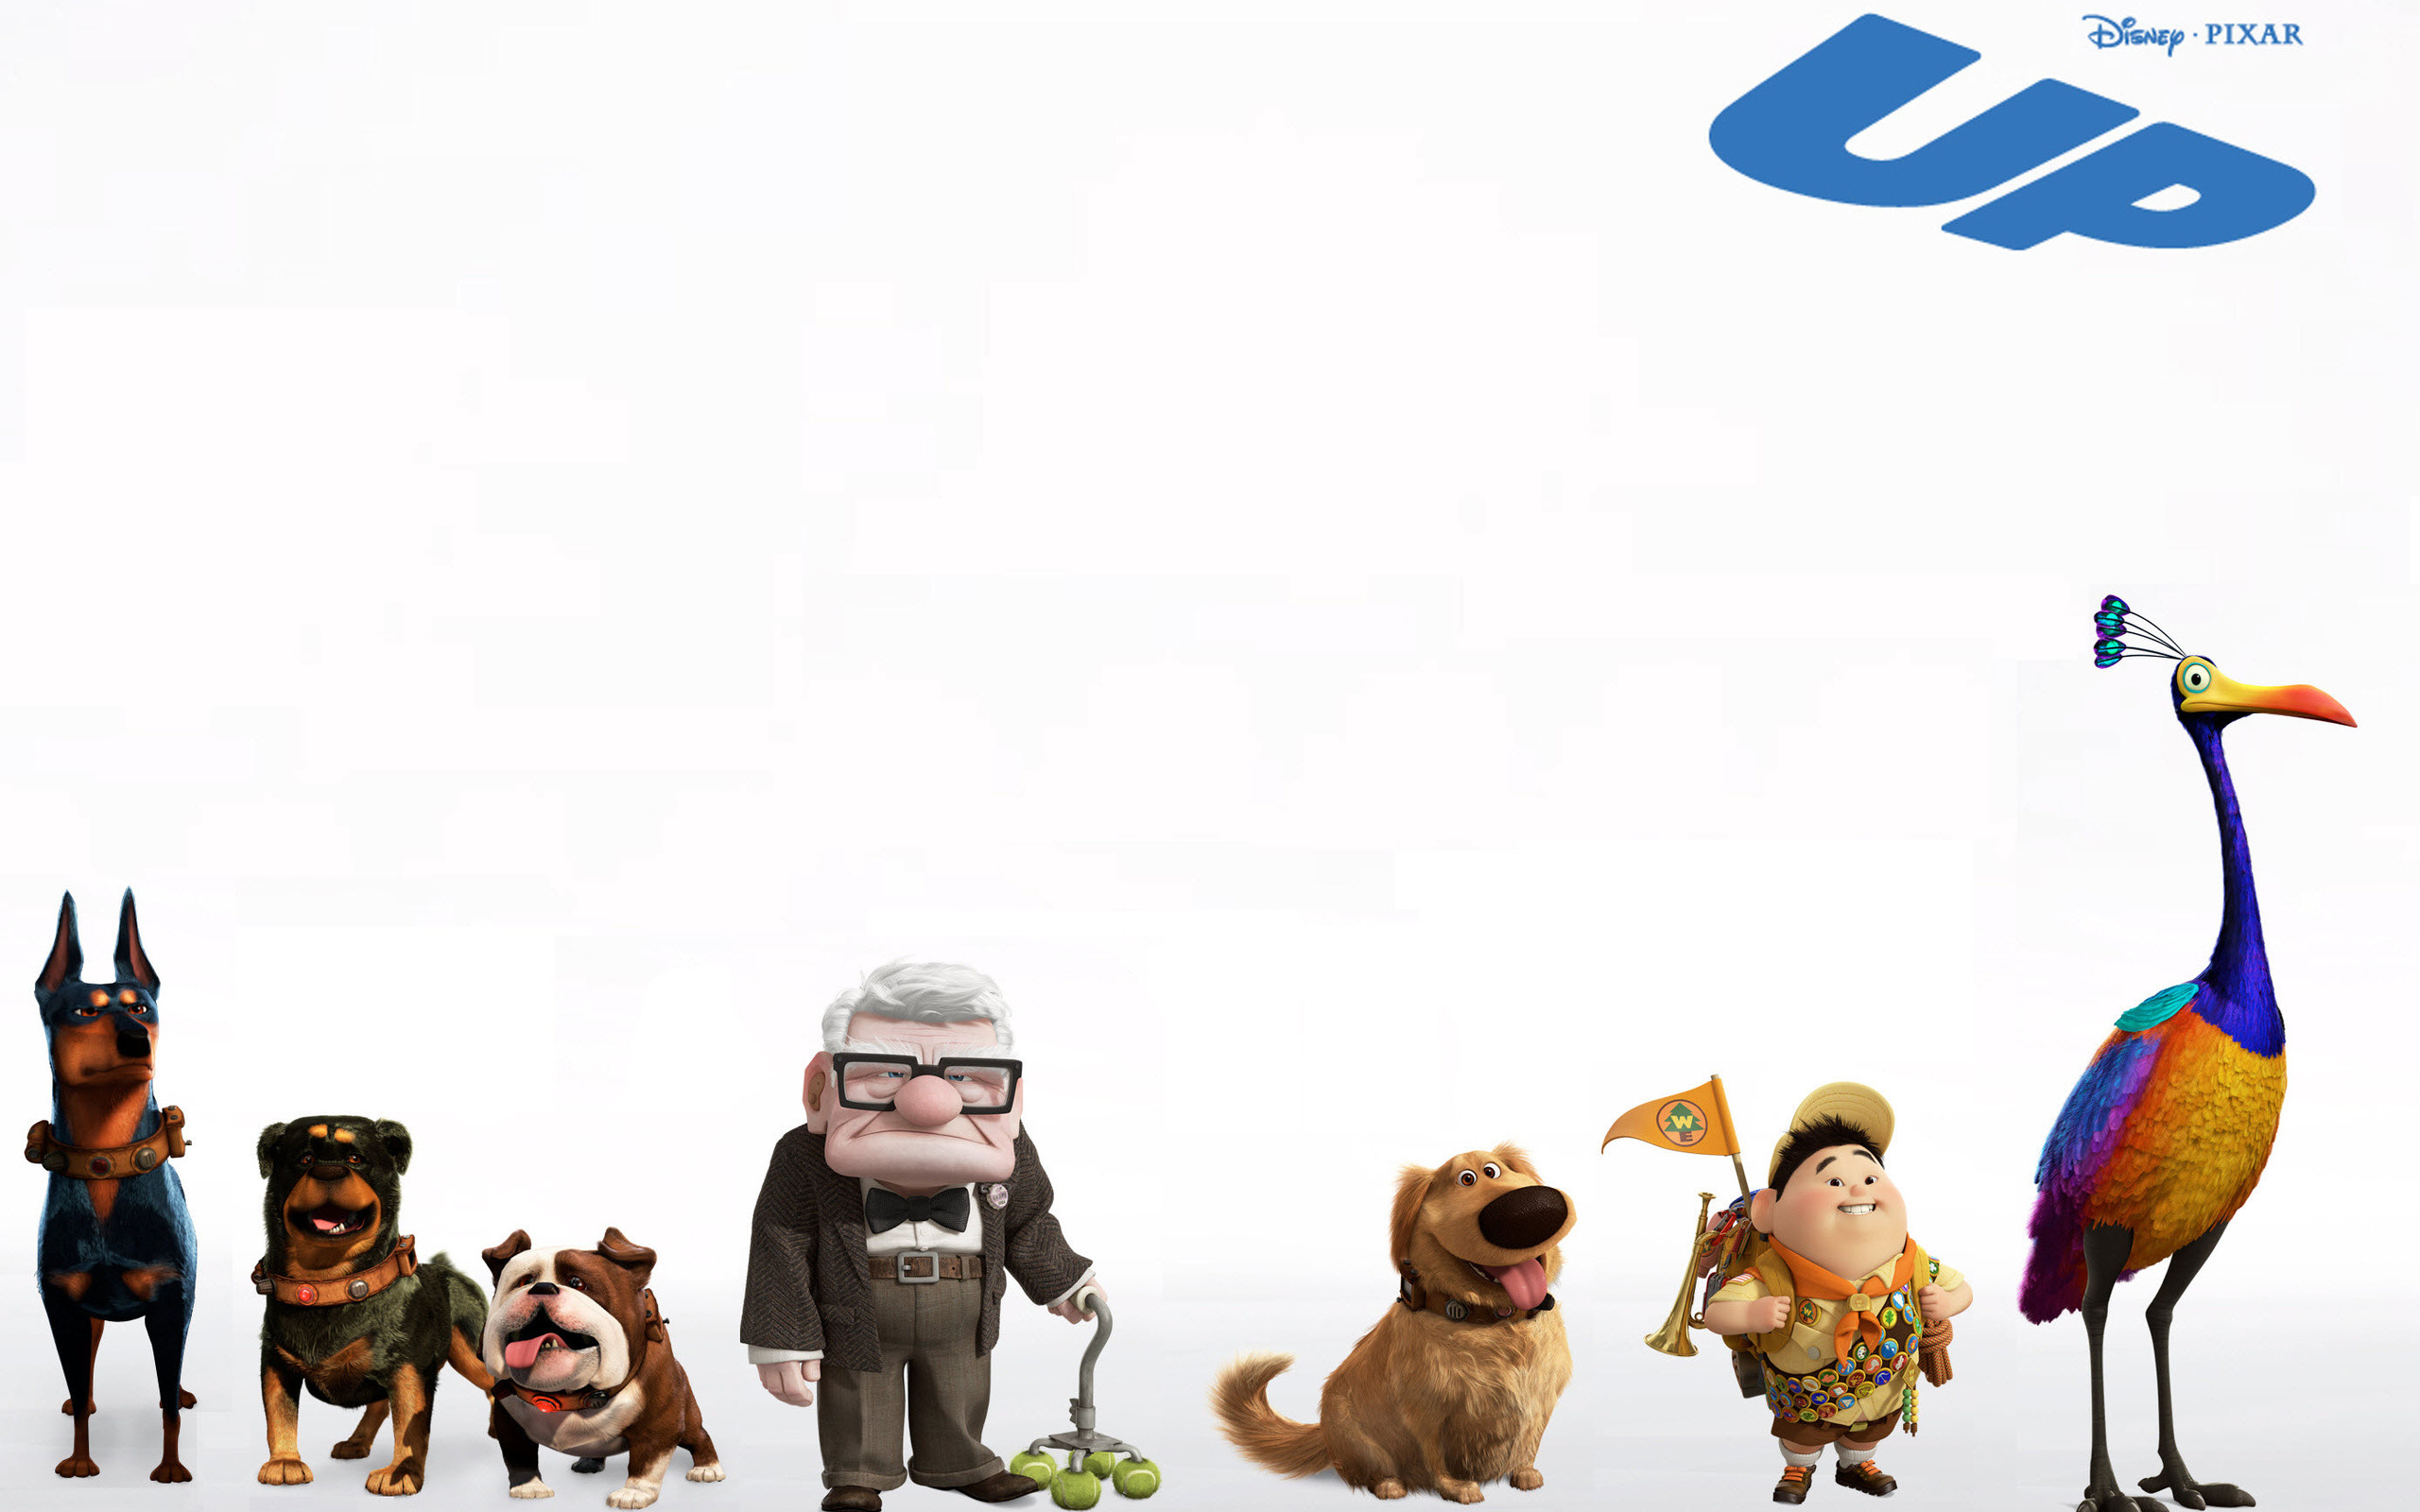 2560x1600 up movie | Up Wallpaper, Up, animals, kids, a dog movie desktop